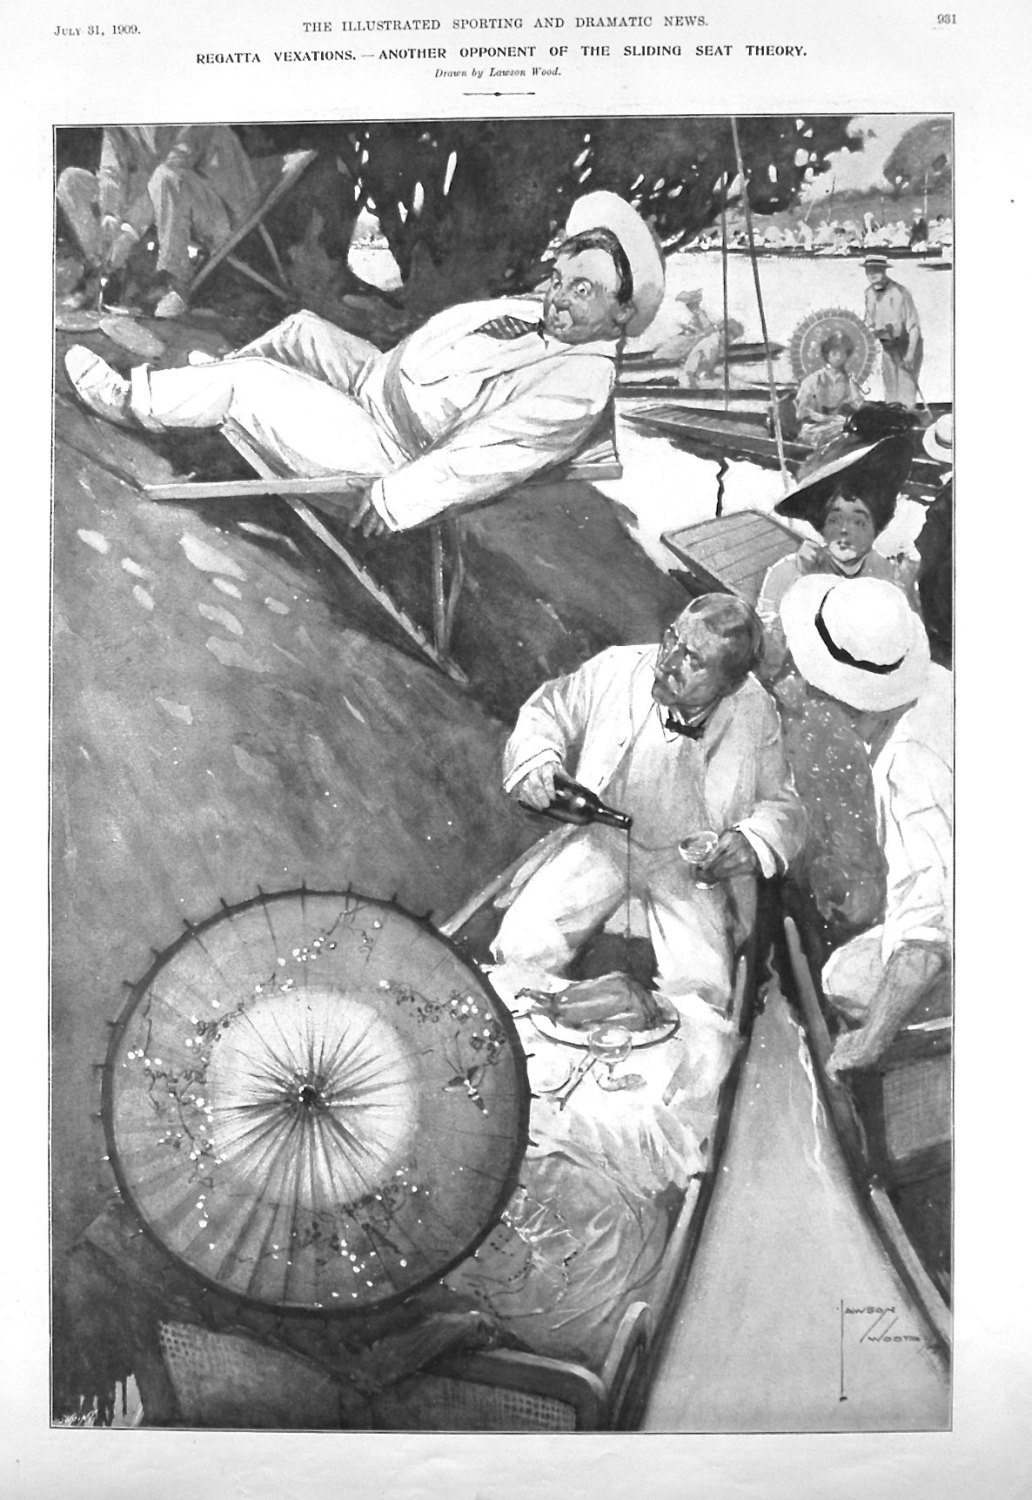 Regatta Vexations. - Another Opponent of the Sliding Seat Theory. 1909